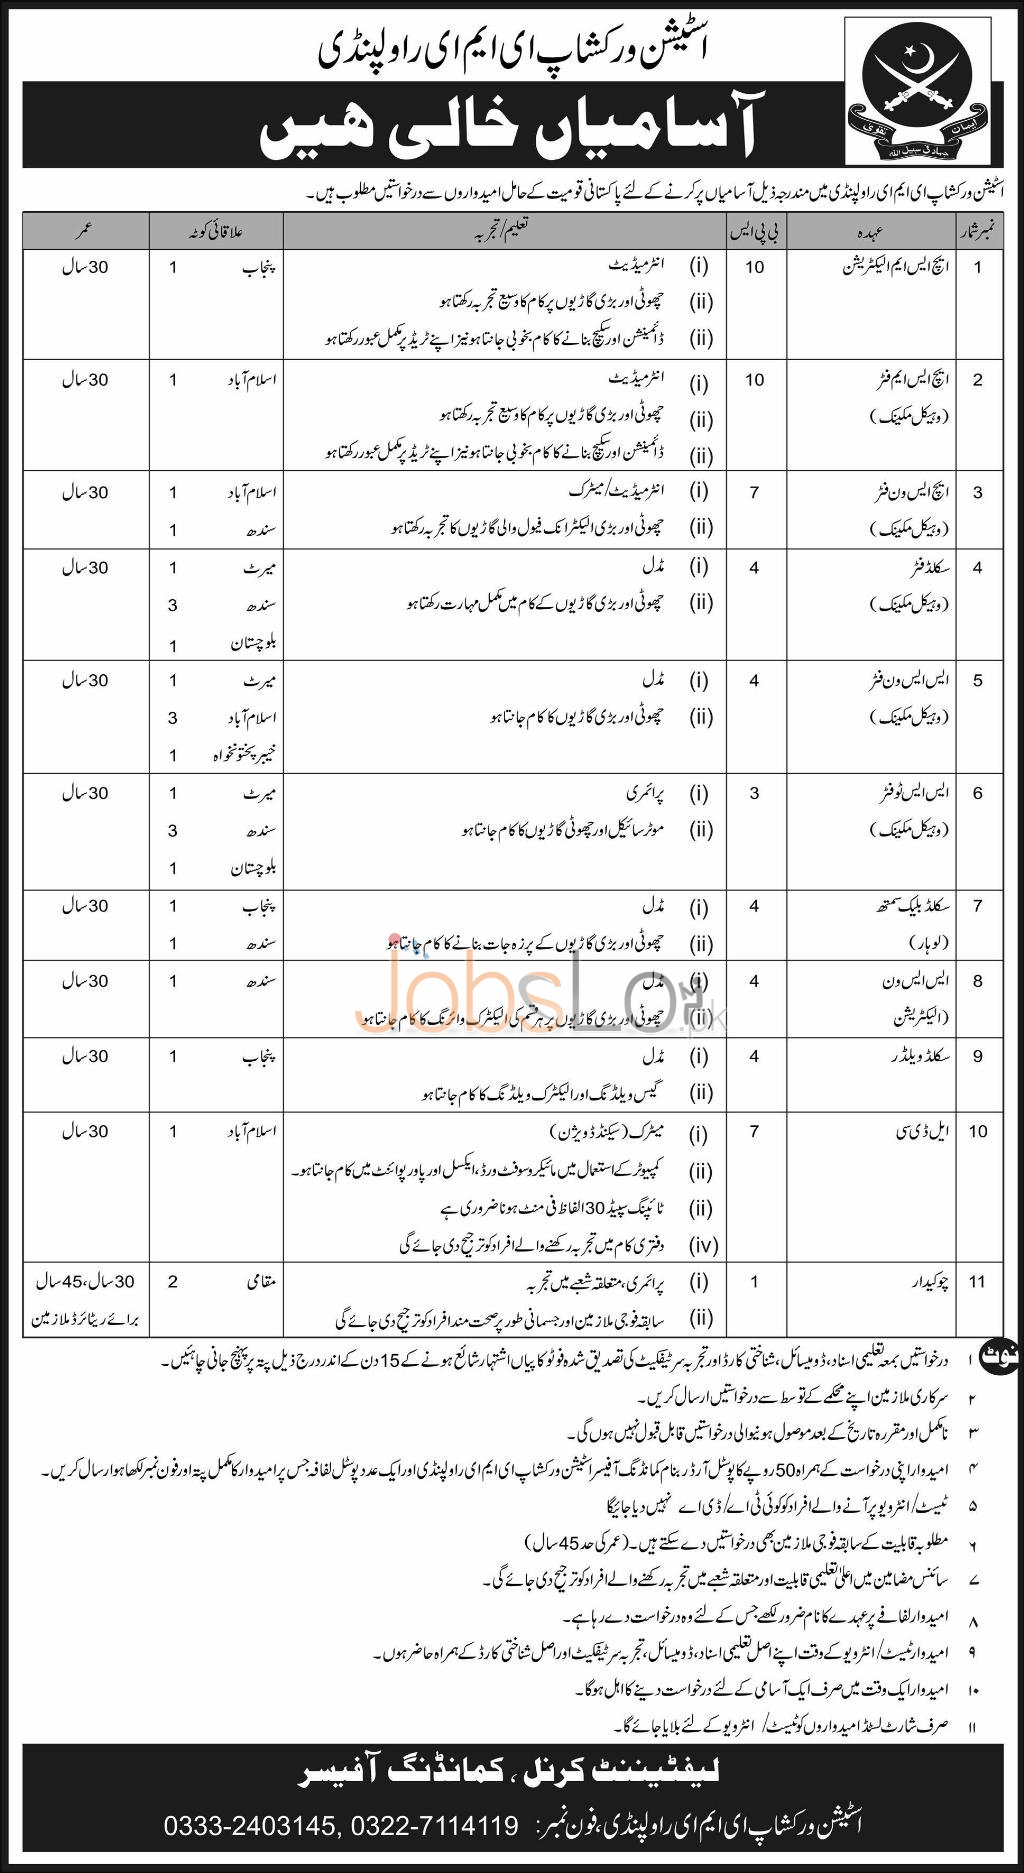 Pakistan Army Jobs in Station Workshop EME Rawalpindi 2016 Vacant Situations